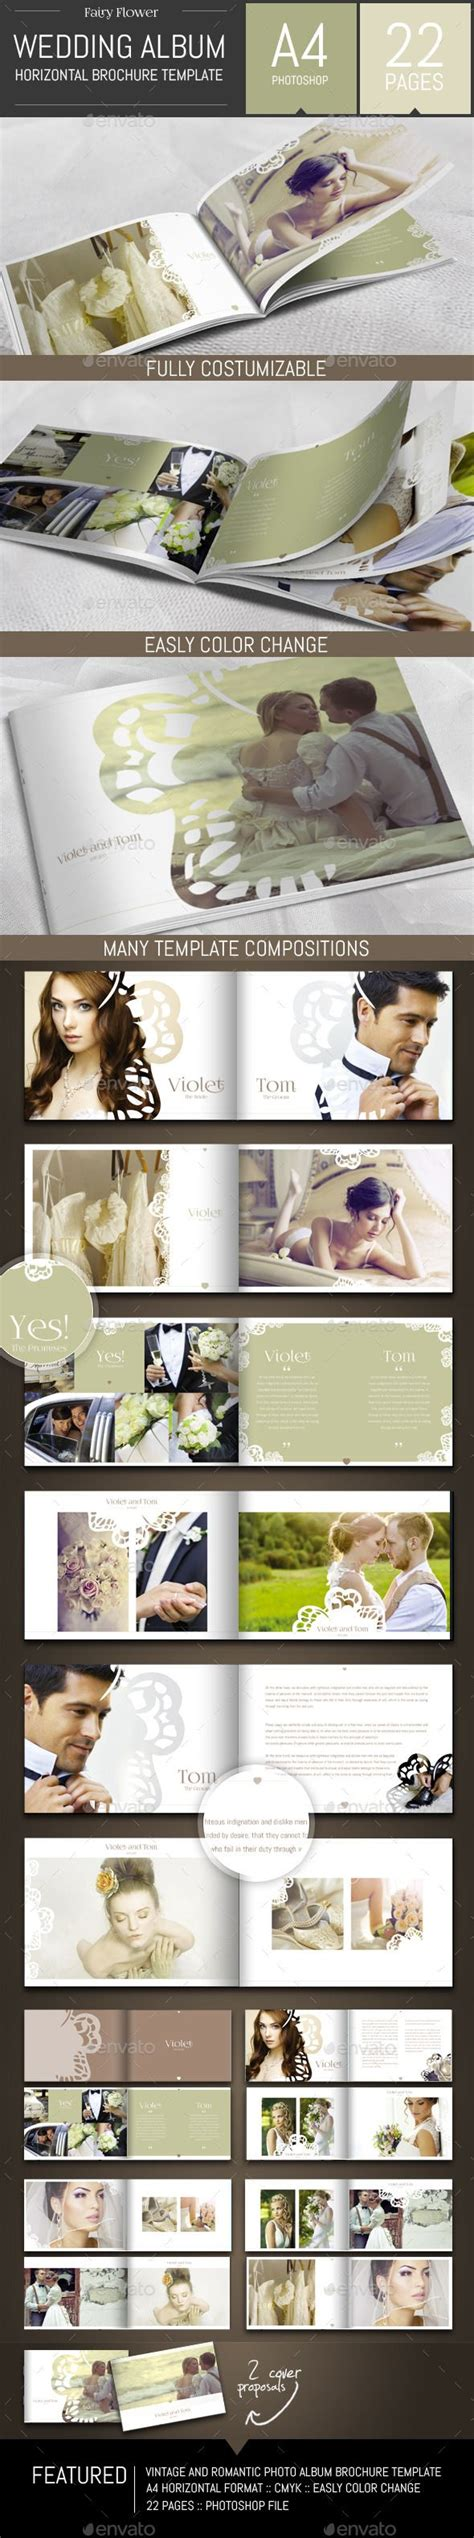 Wedding Photo Album Horizontal Brochure Template by Die Besten 25 Hochzeitsbuch Layout Ideen Auf